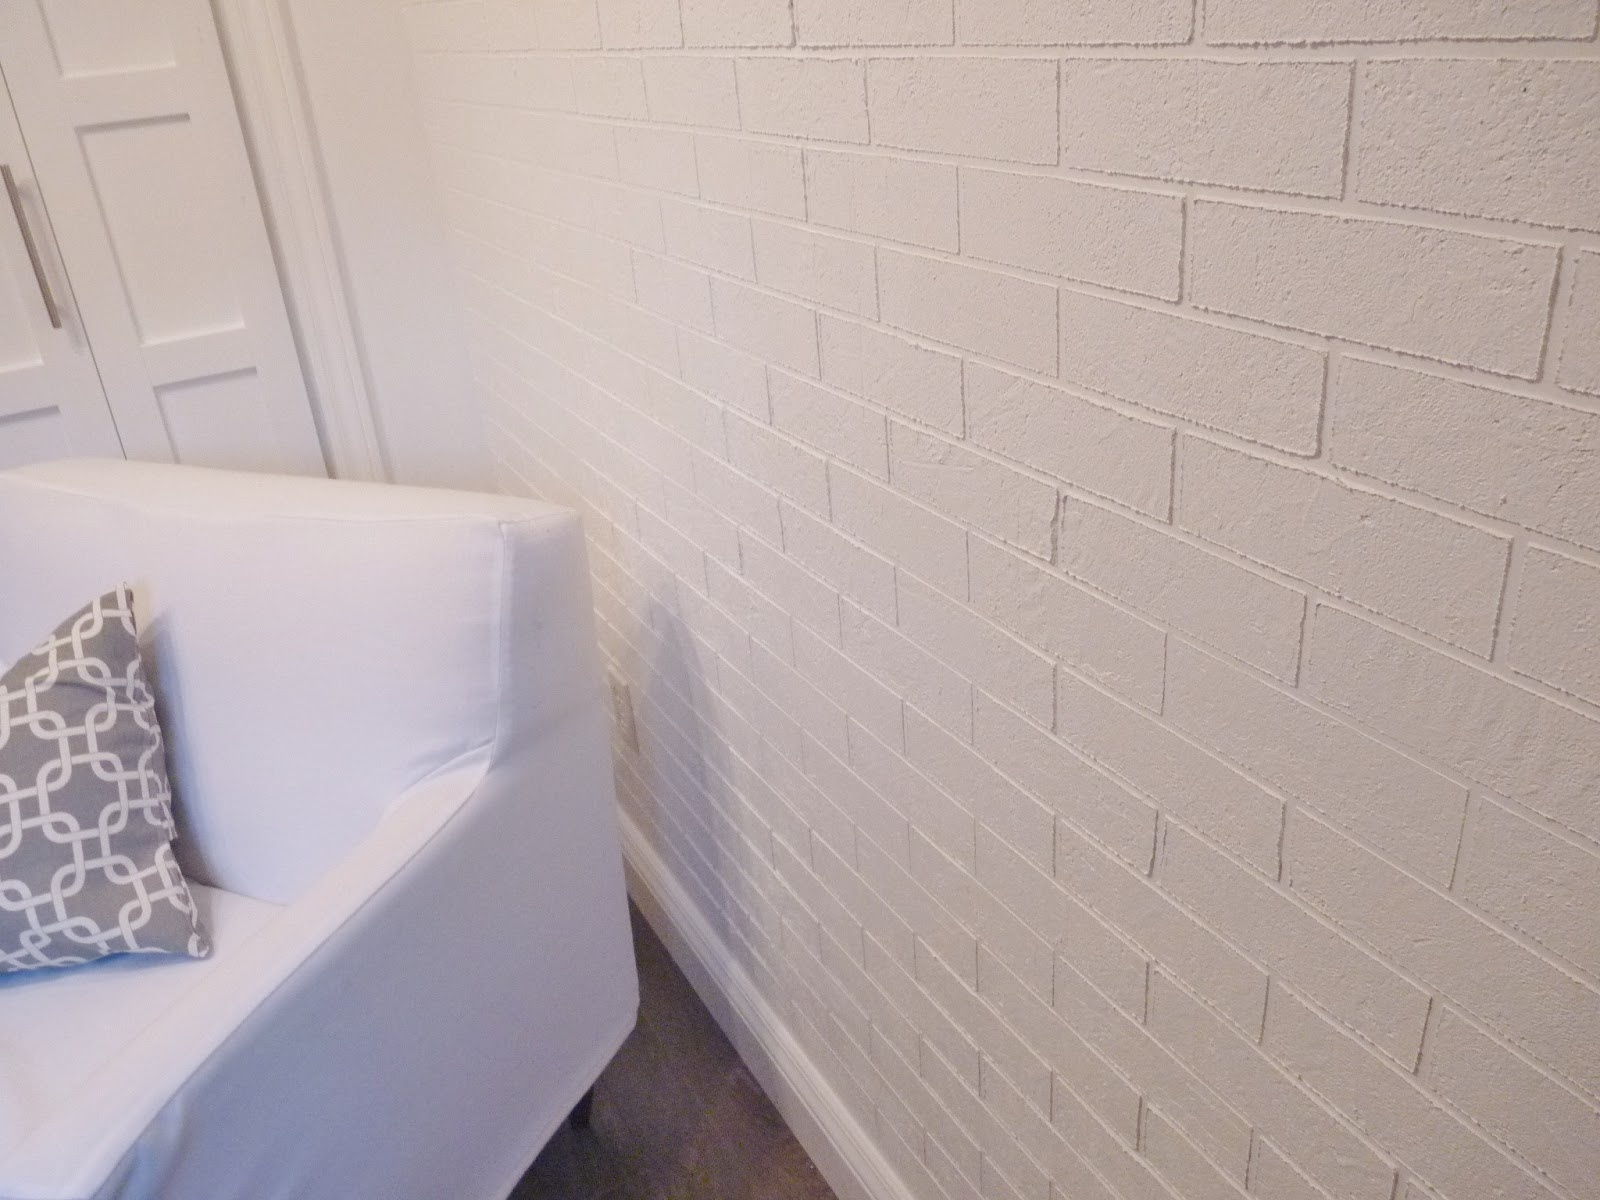 D i y d e s i g n how to make a faux exposed brick wall paint your faux brick wall with 2 coats of paint allowing paint to dry in between coats allow final coat to dry and remove tape from any electrical outlets amipublicfo Images